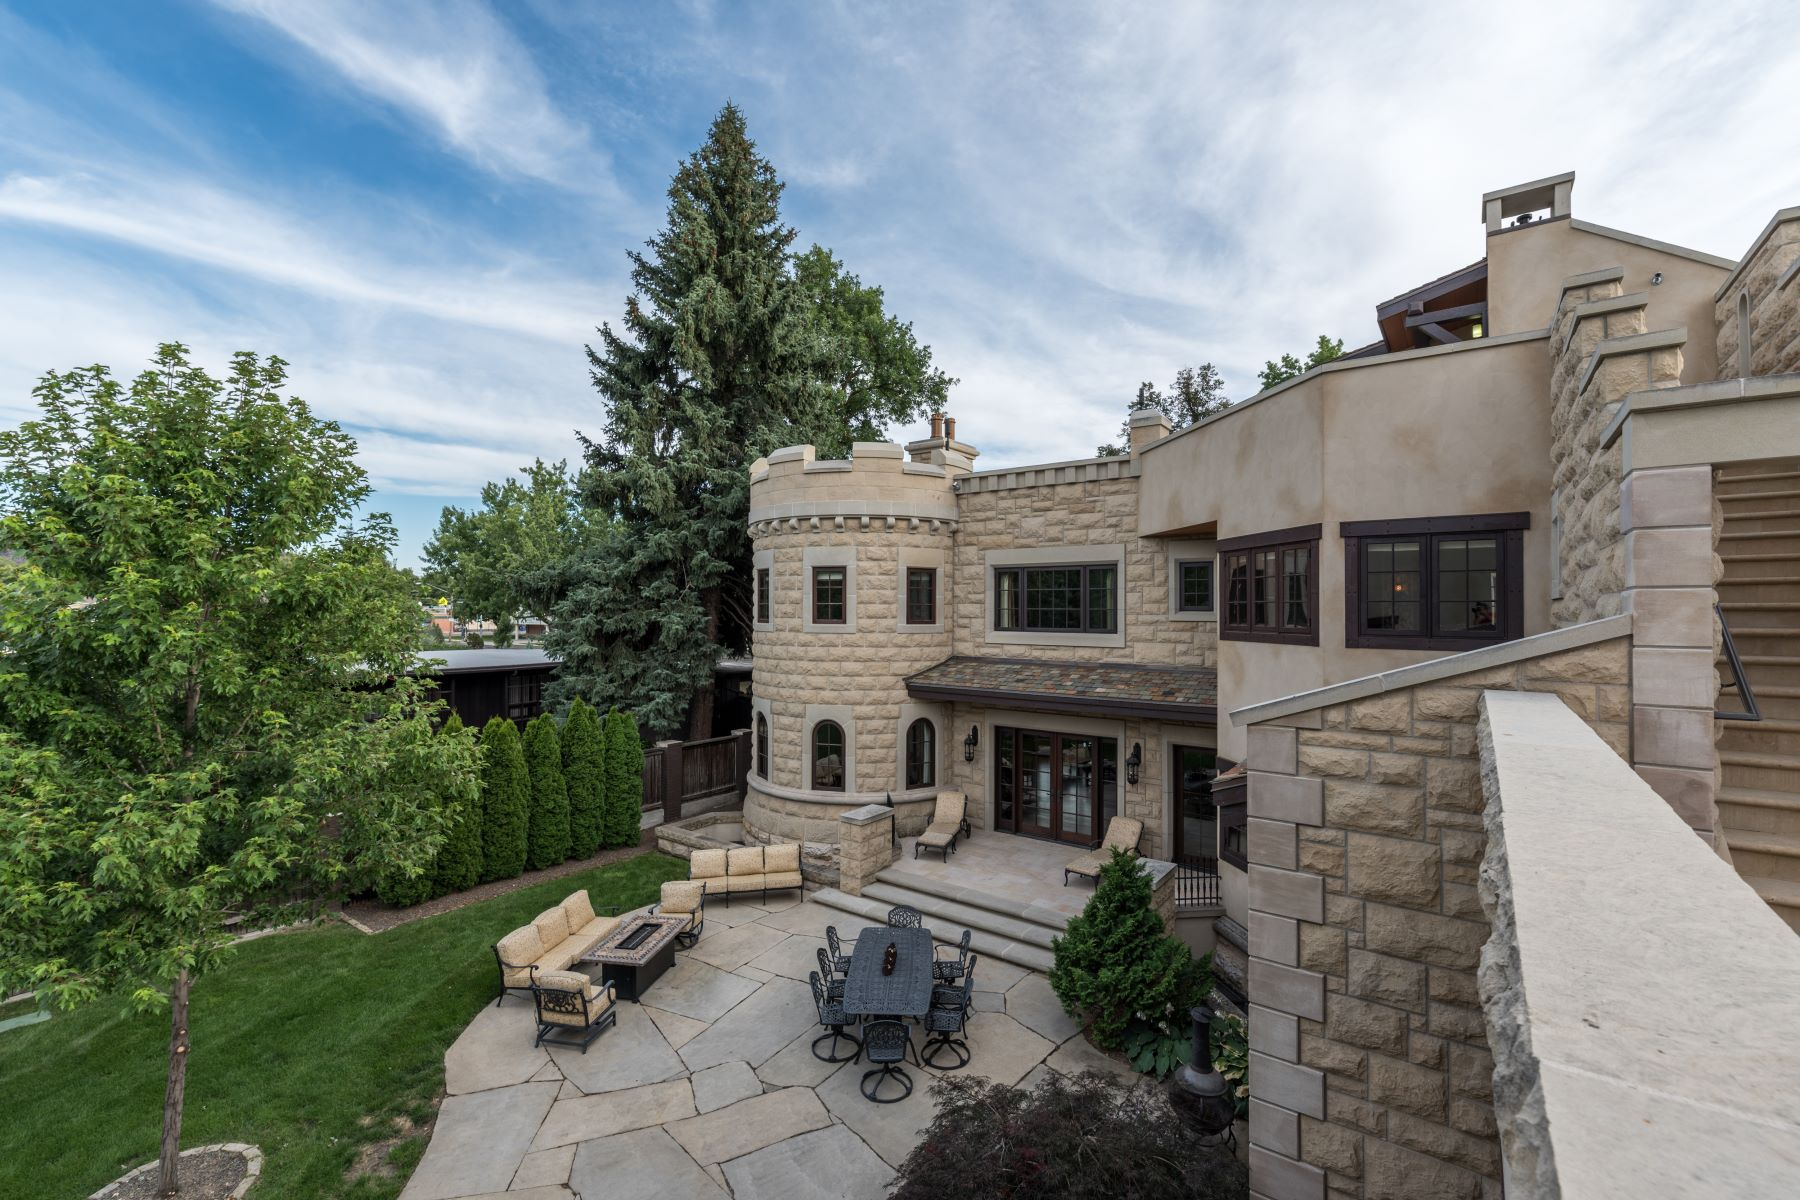 Additional photo for property listing at 1700 Warm Springs, Boise 1700 E Warm Springs Boise, Idaho 83712